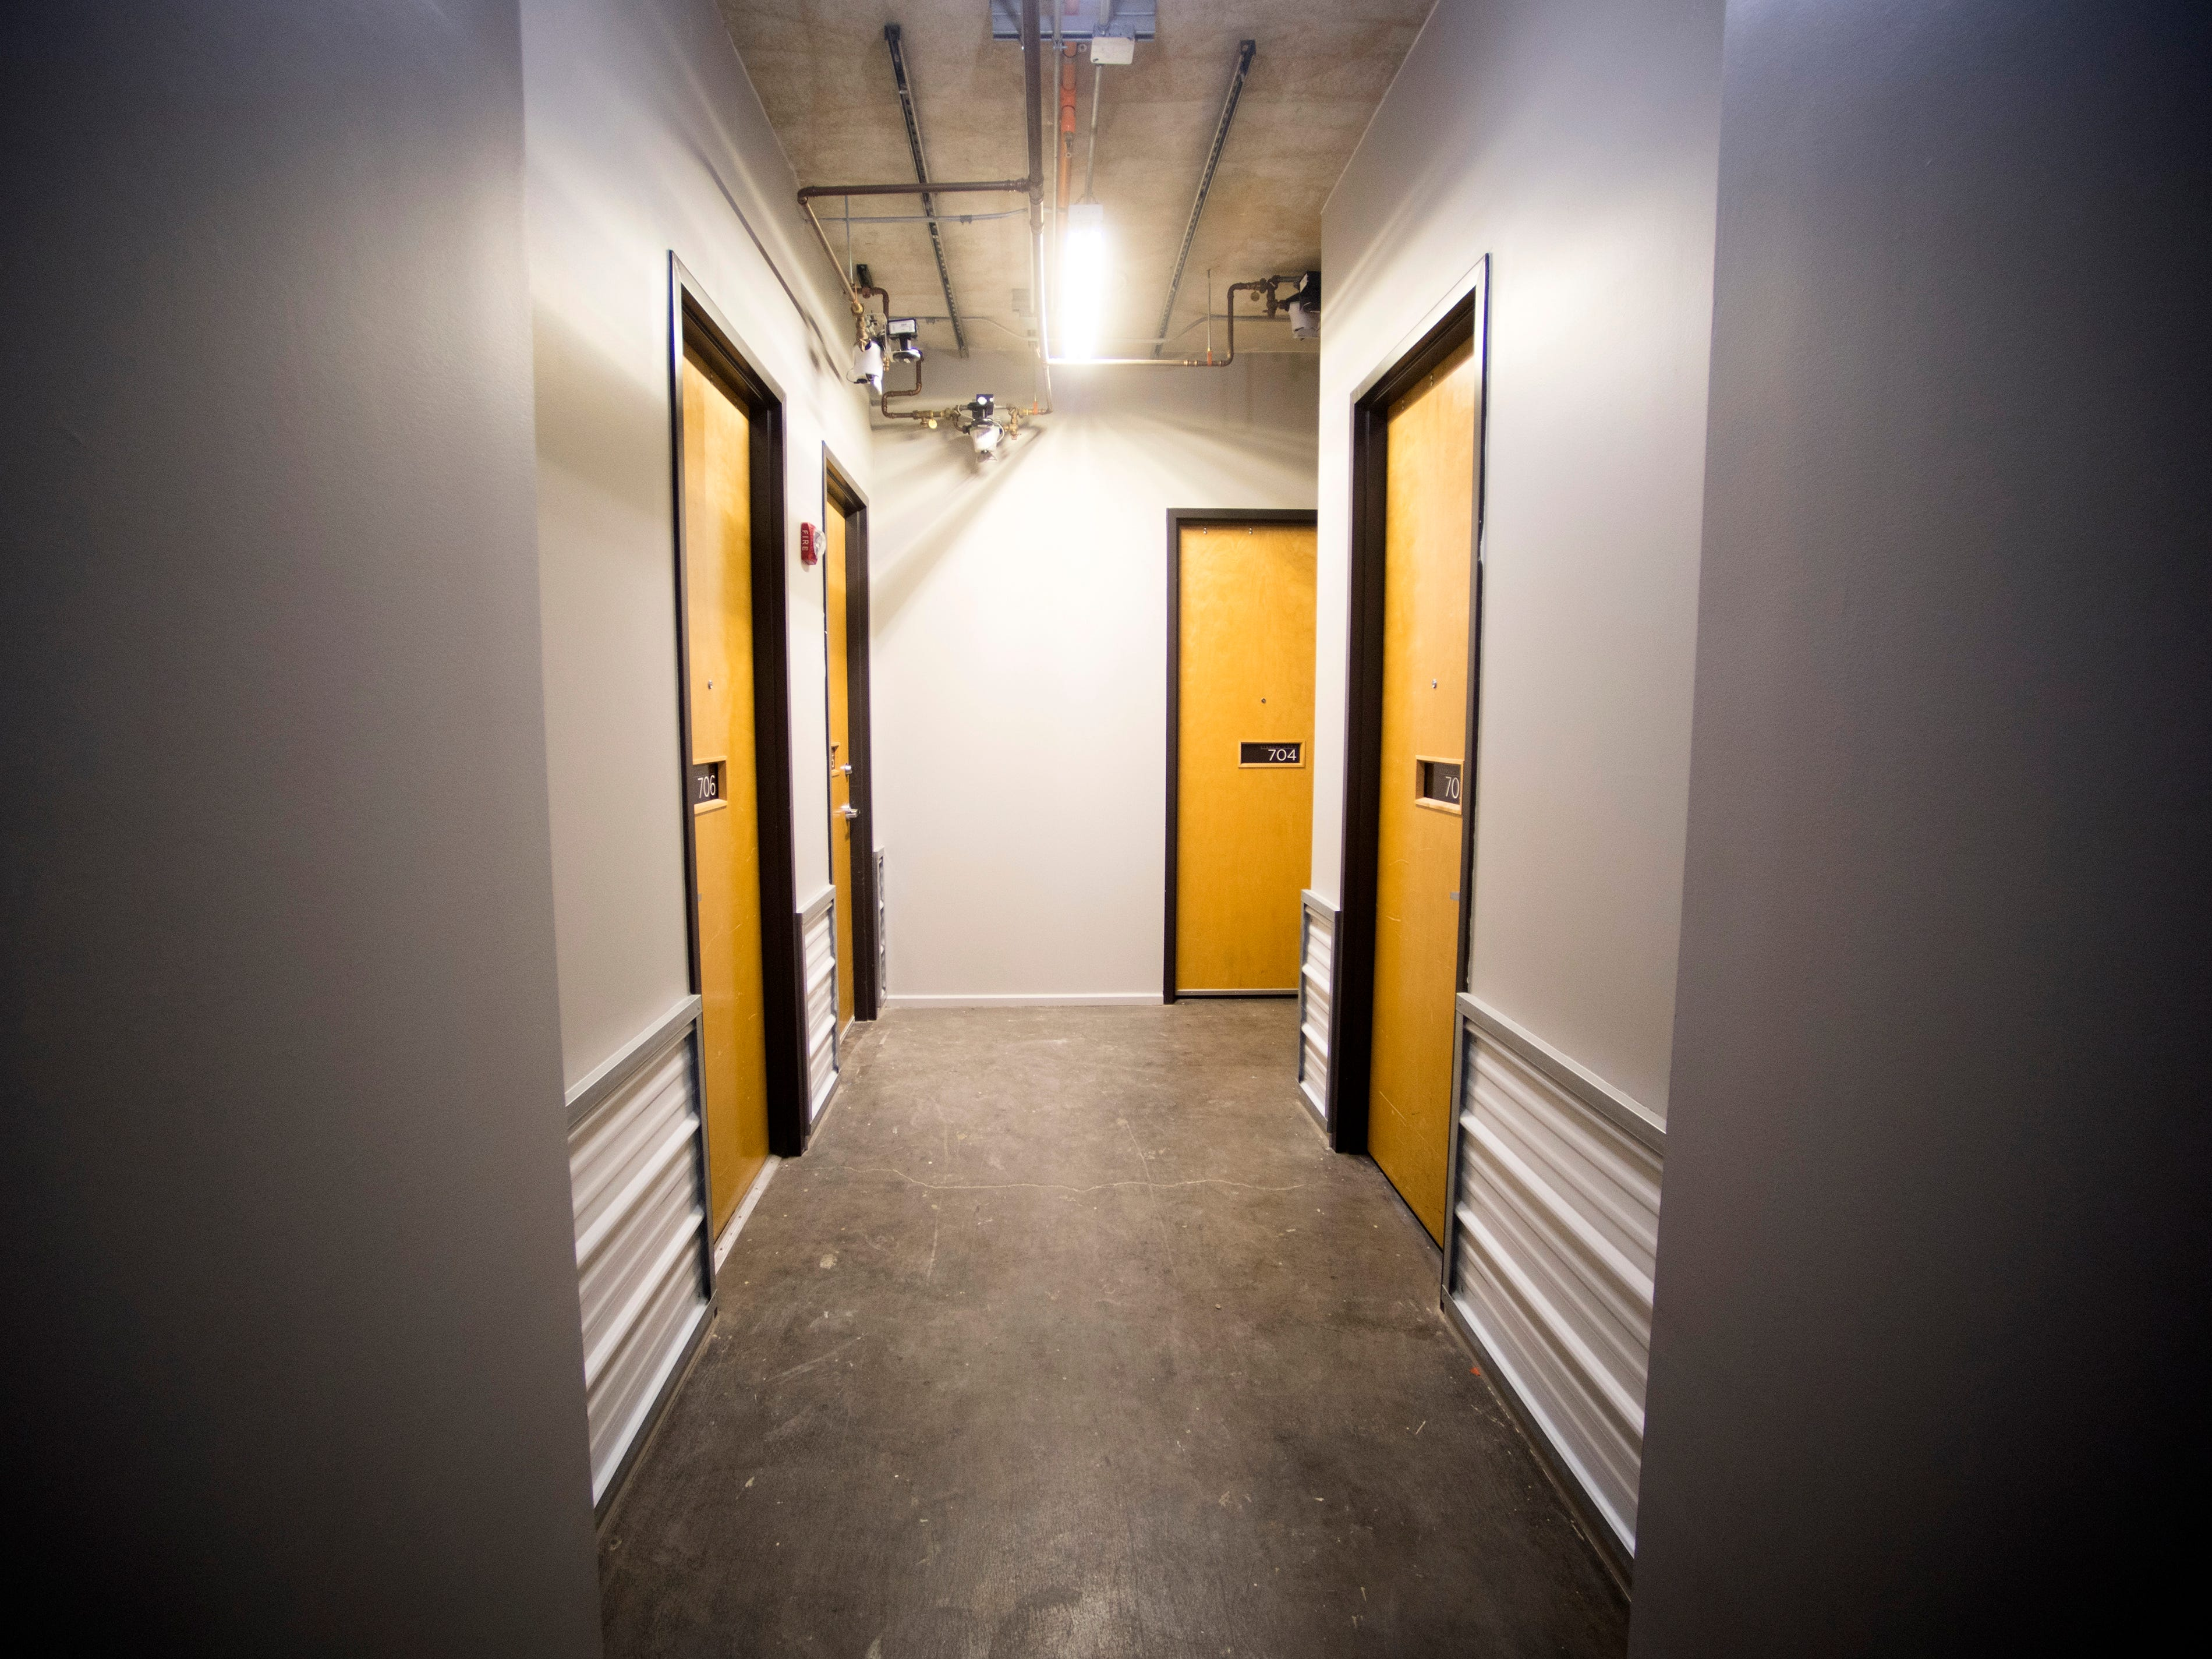 Hallways are receiving new coats of paint at Sterchi Lofts on Gay St. in downtown Knoxville.